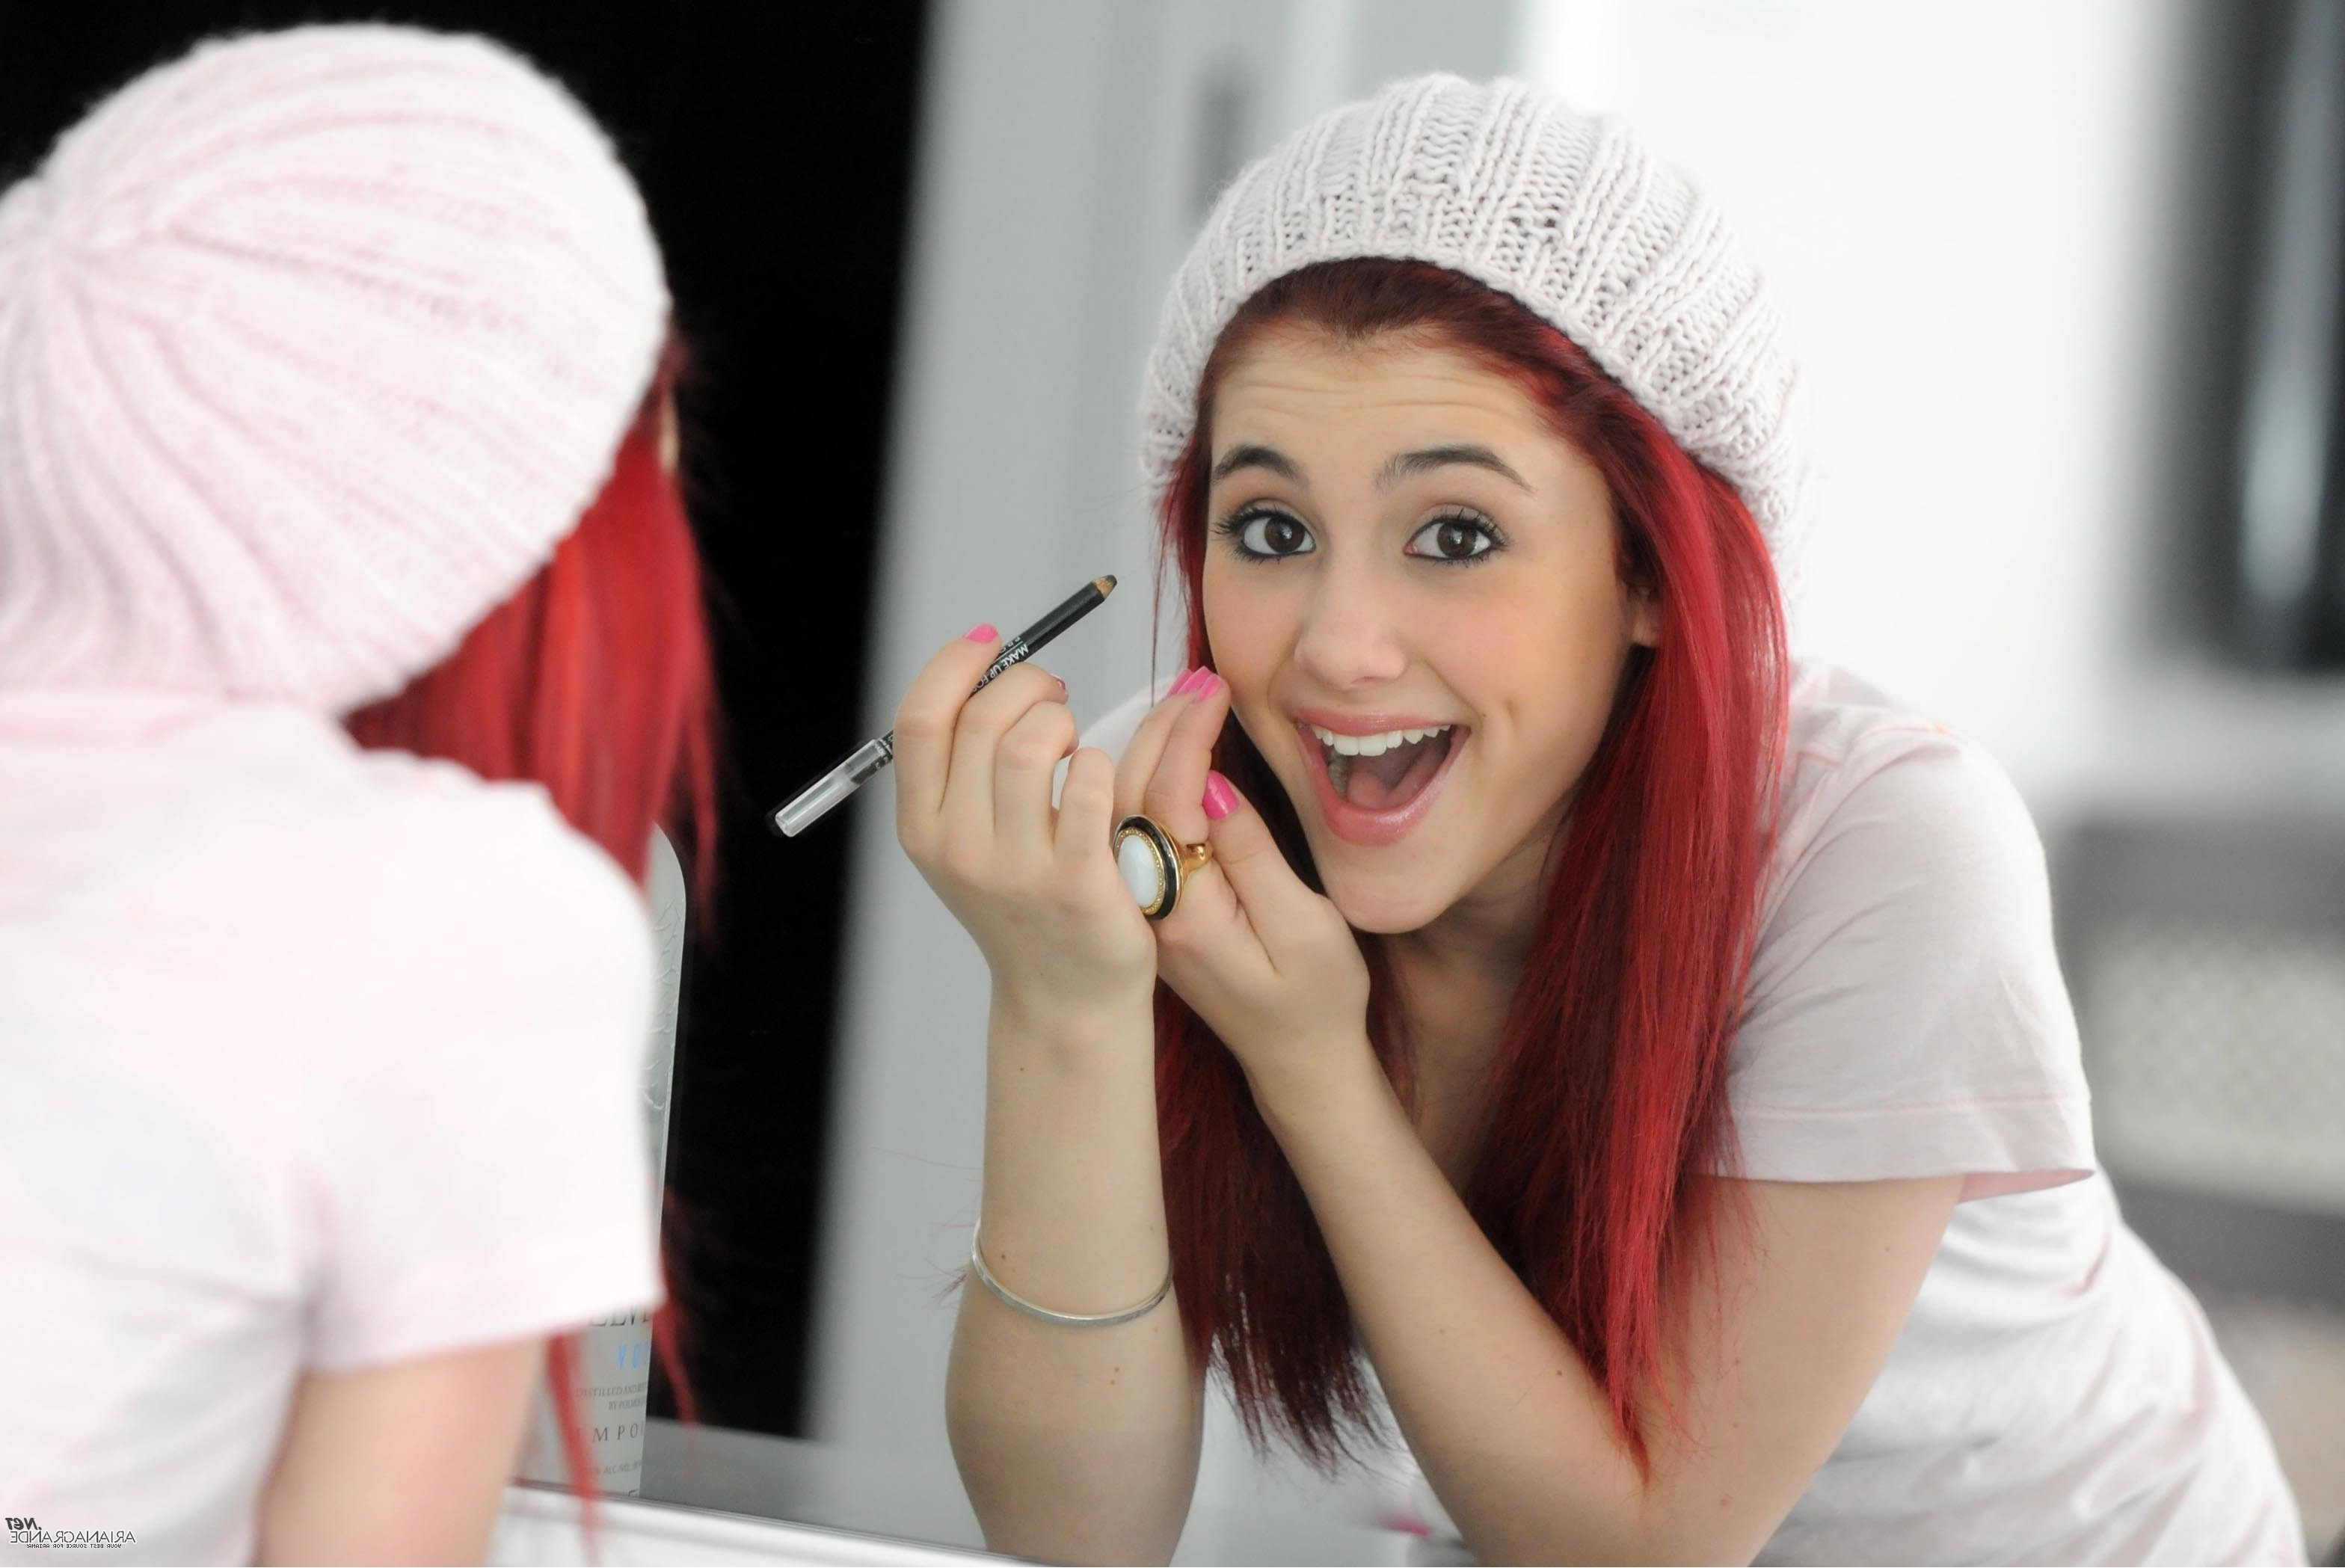 Ariana Grande Dimple Apple IphoneiPod TouchGalaxy Ace